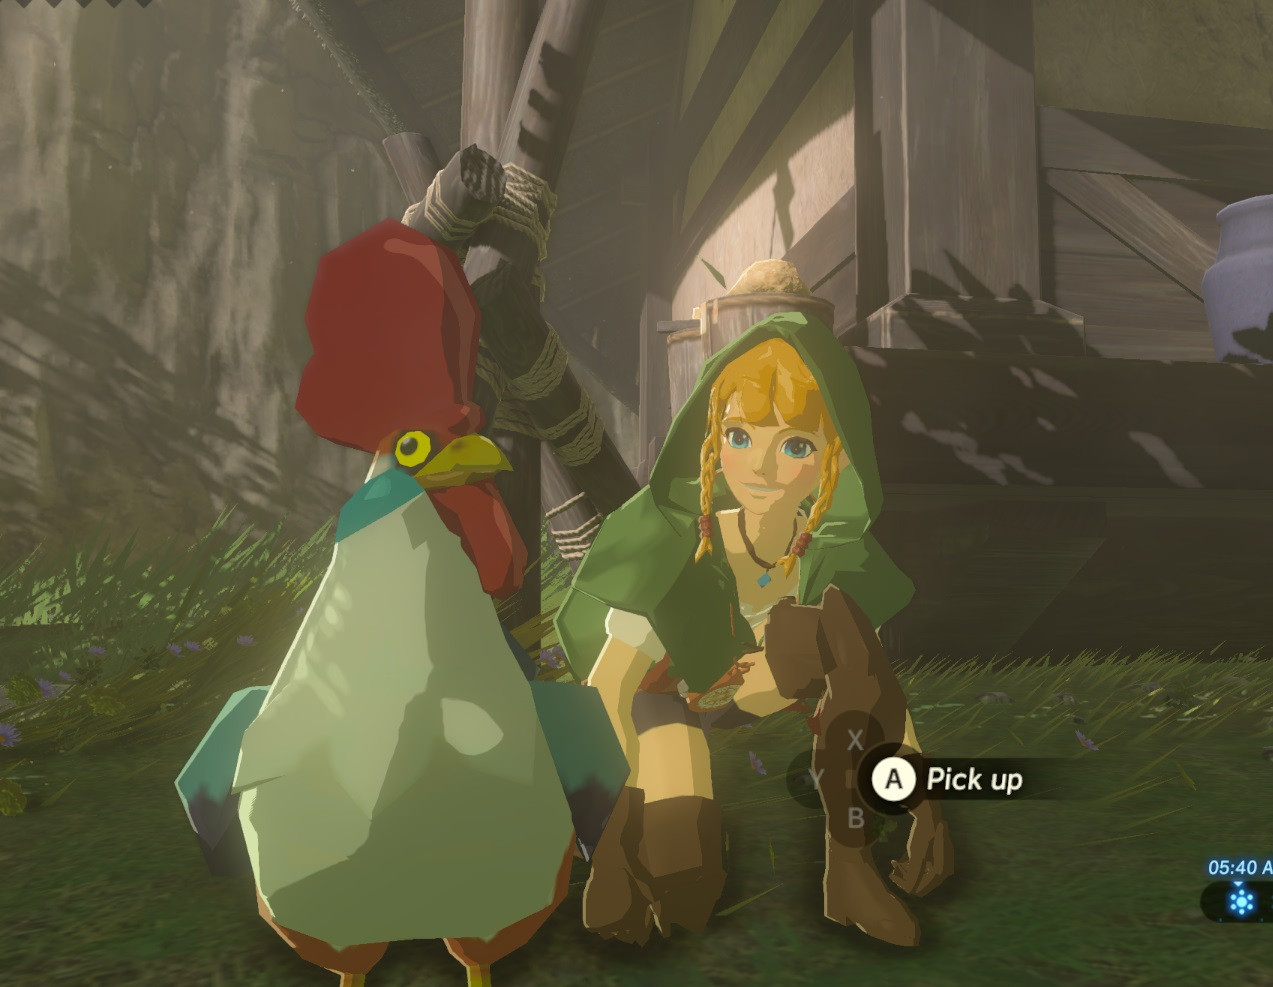 Breath Of The Wild Bosses >> Linkle Mod Makes Breath of the Wild Even Better | Cat with Monocle